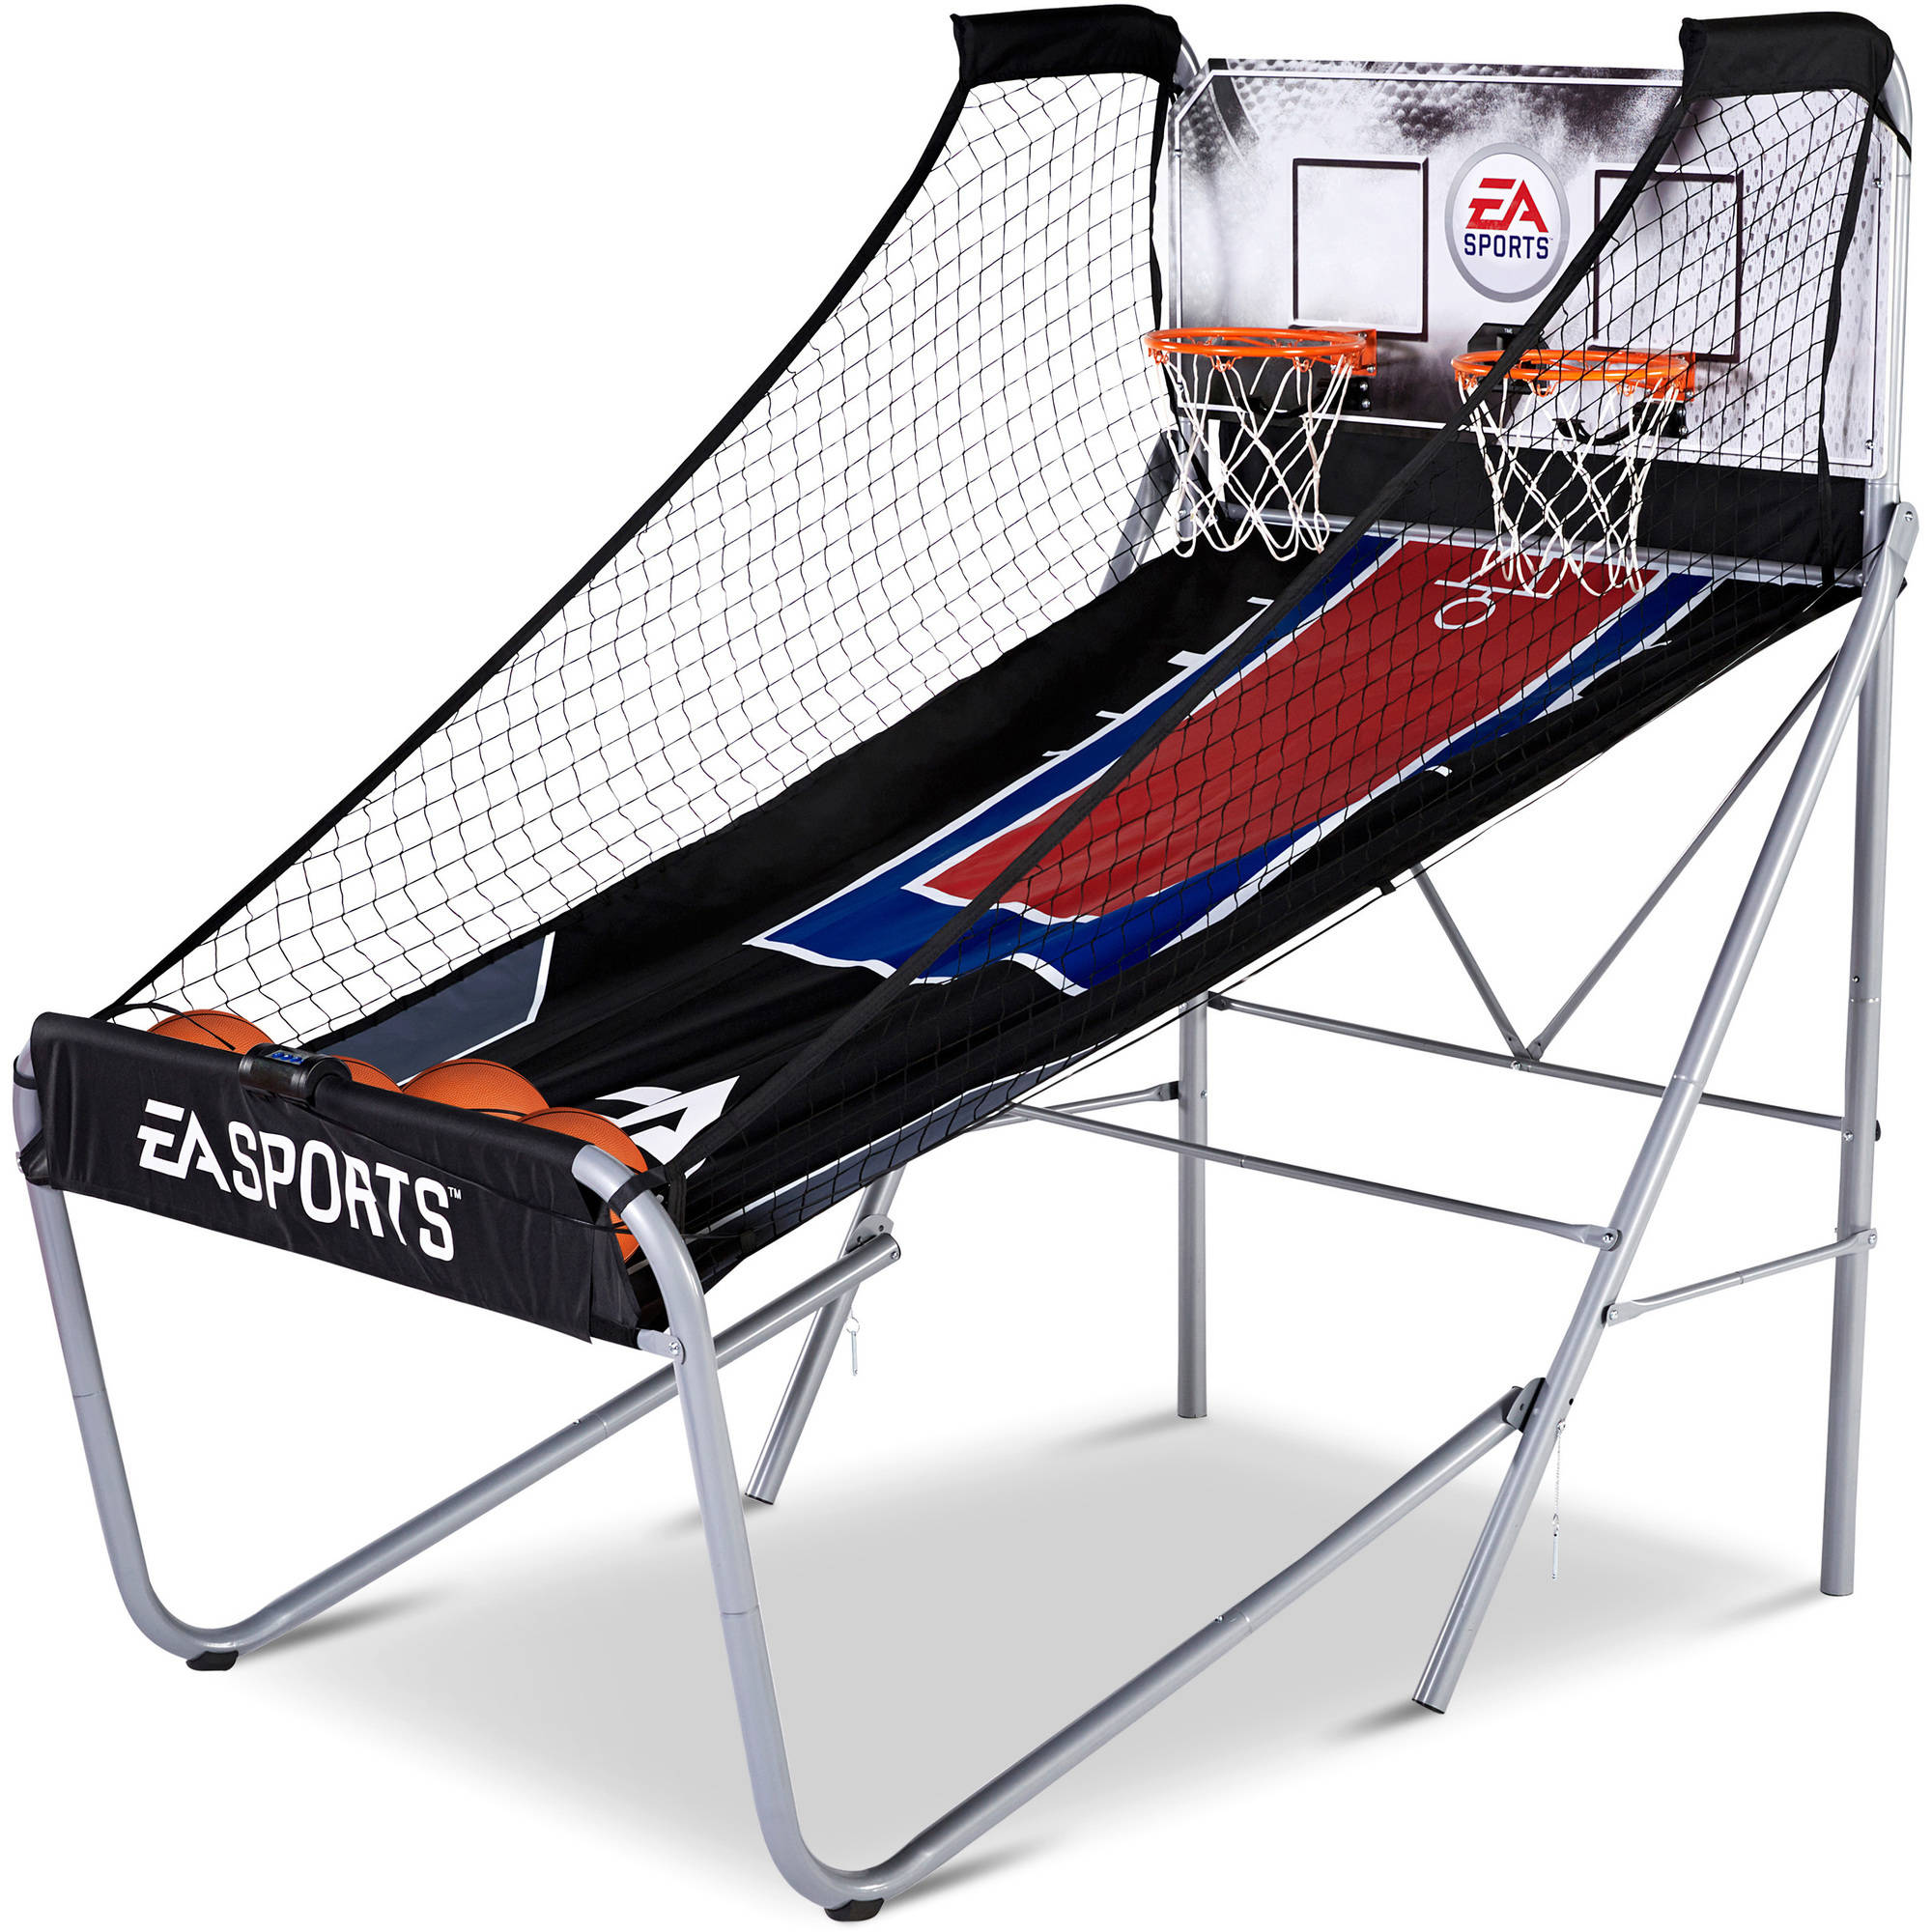 EA Sports 2-Player Basketball Game with 8 Electronic Game Options, Easy Assembly by MEDAL SPORTS TAIWAN CORPORATION